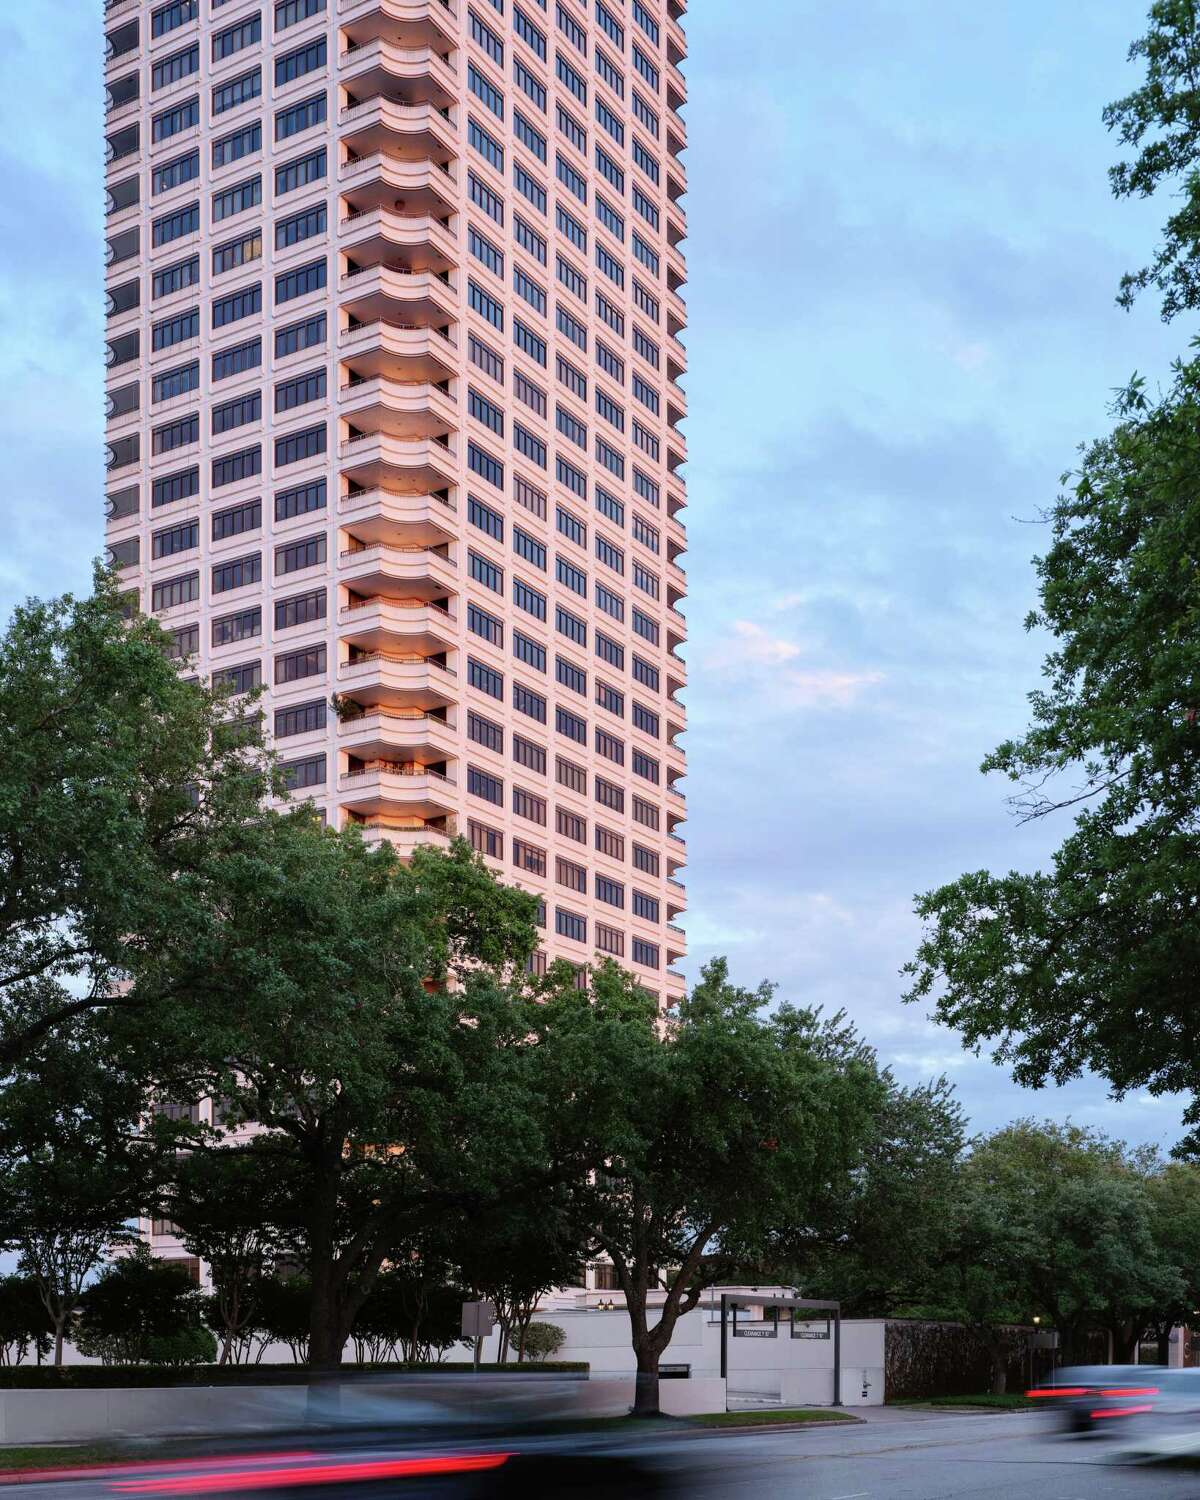 The Huntingdon high rise is a luxury example of density living.